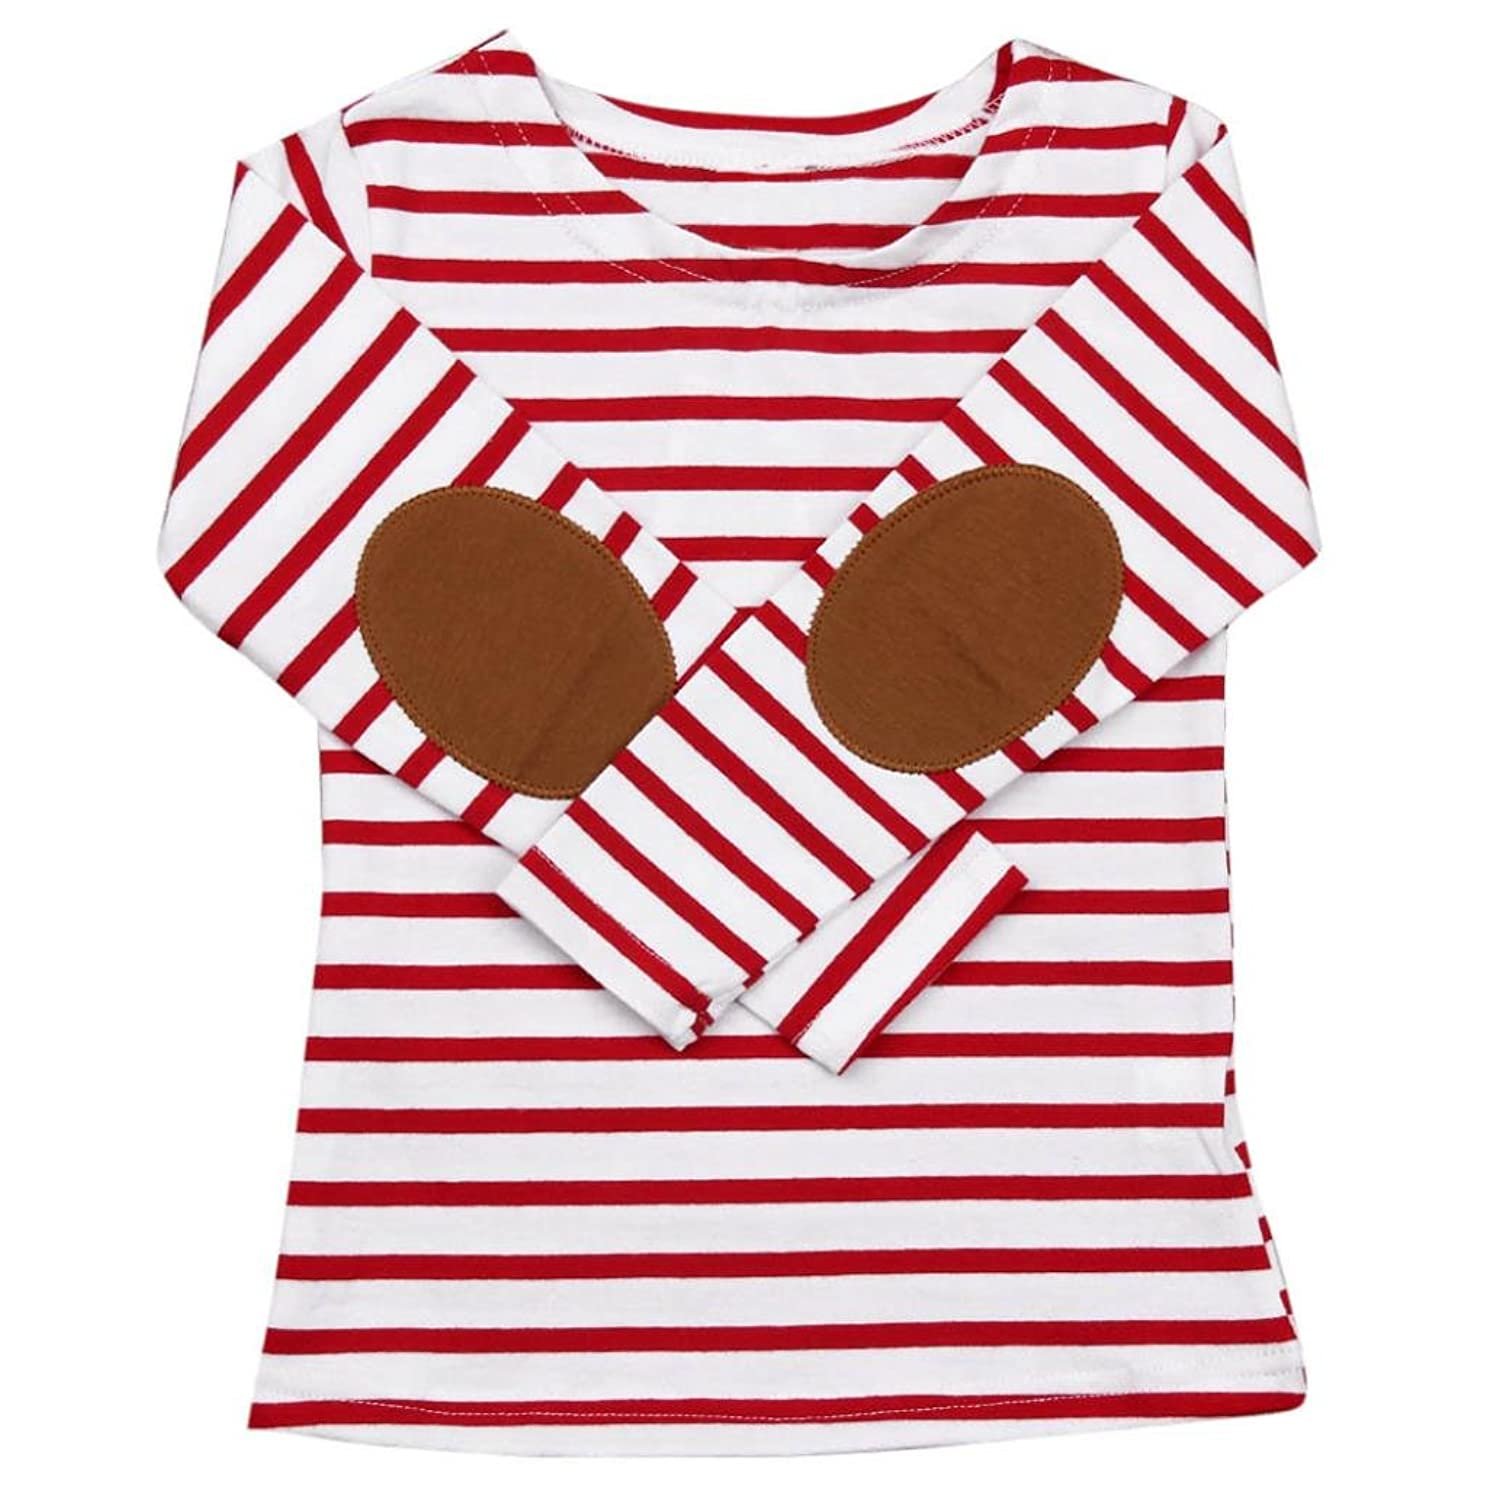 G-real Toddler Little Girls Boys Casual Striped Print Patchwork Sleeve Cotton Bottom Tops For 2-6T